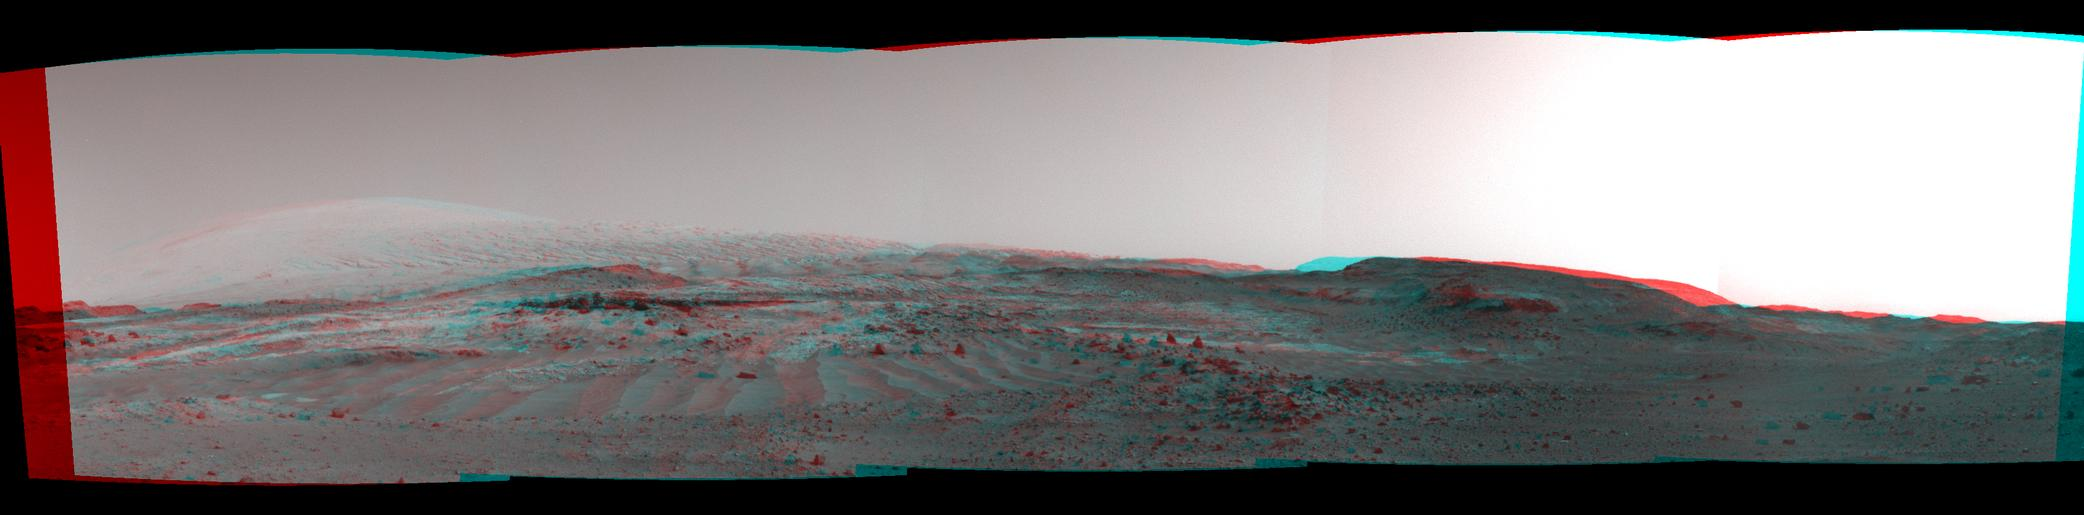 Scene From 'Artist's Drive' on Mars (Stereo)